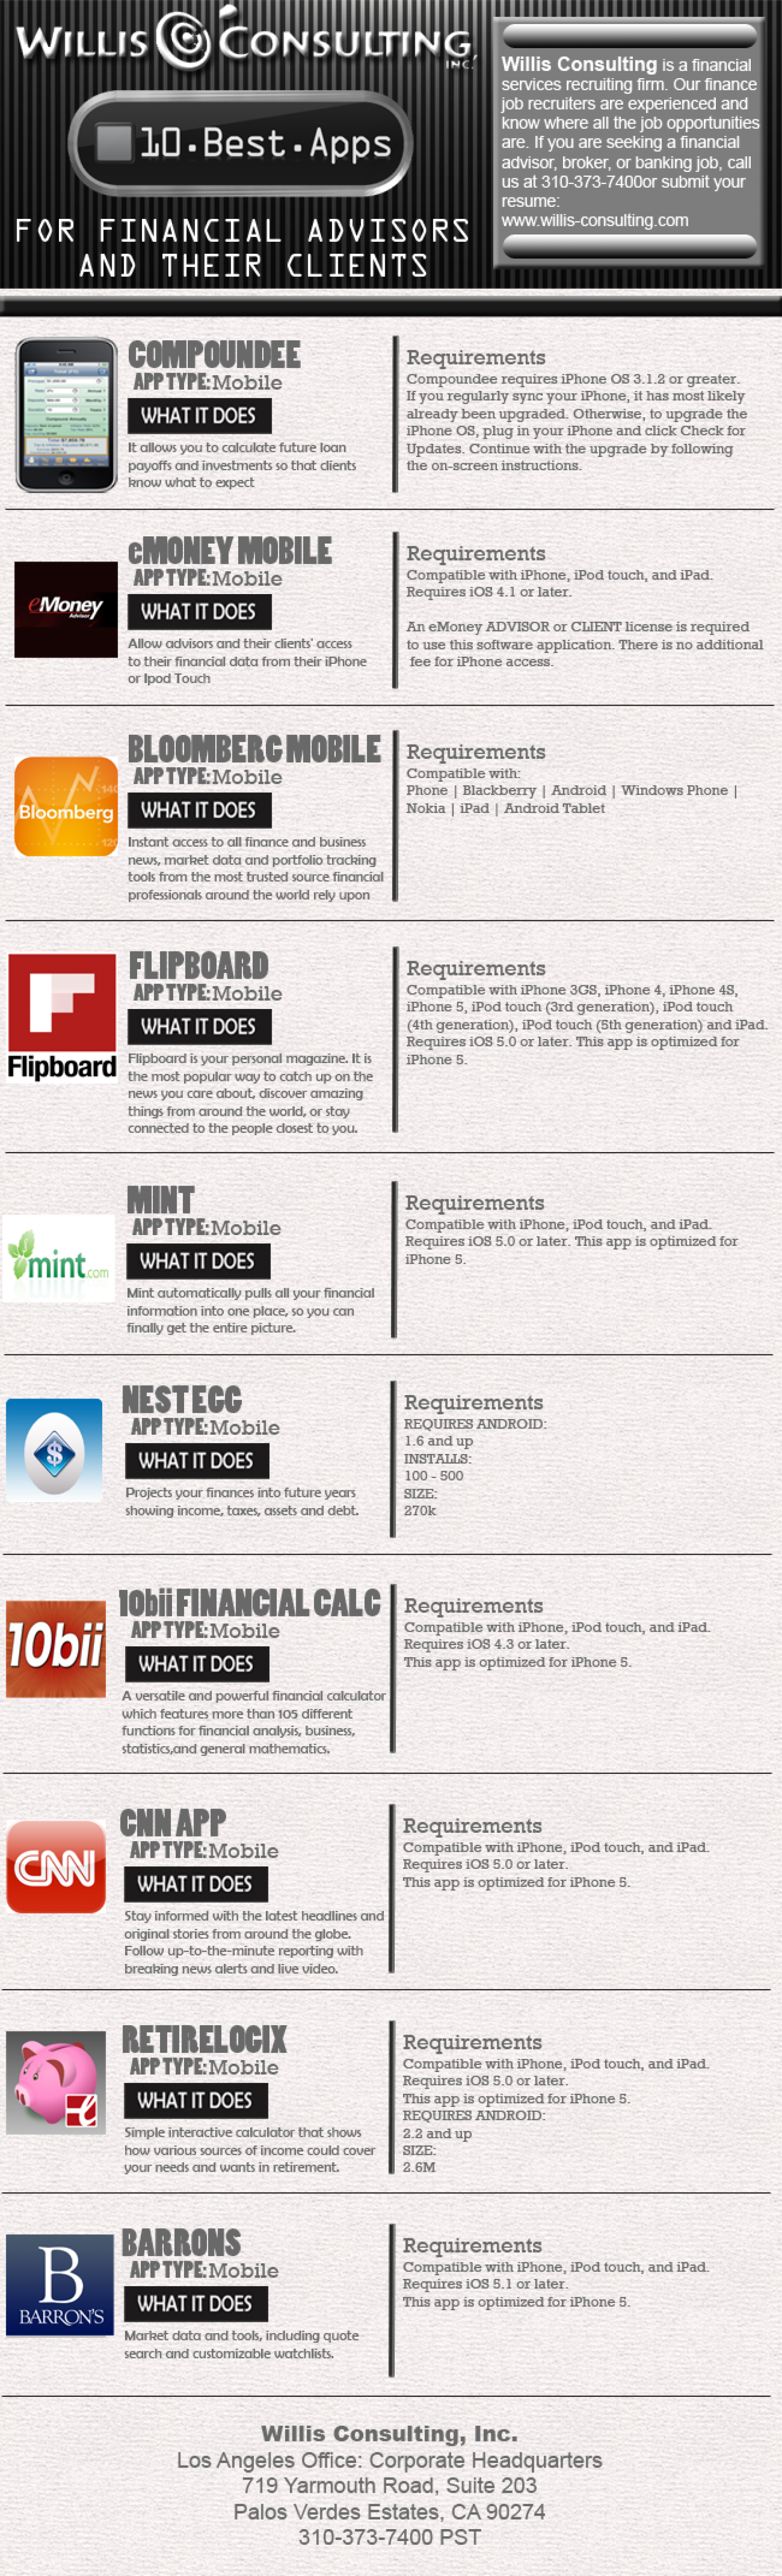 10 Best Apps For Financial Advisors and Their Clients Infographic